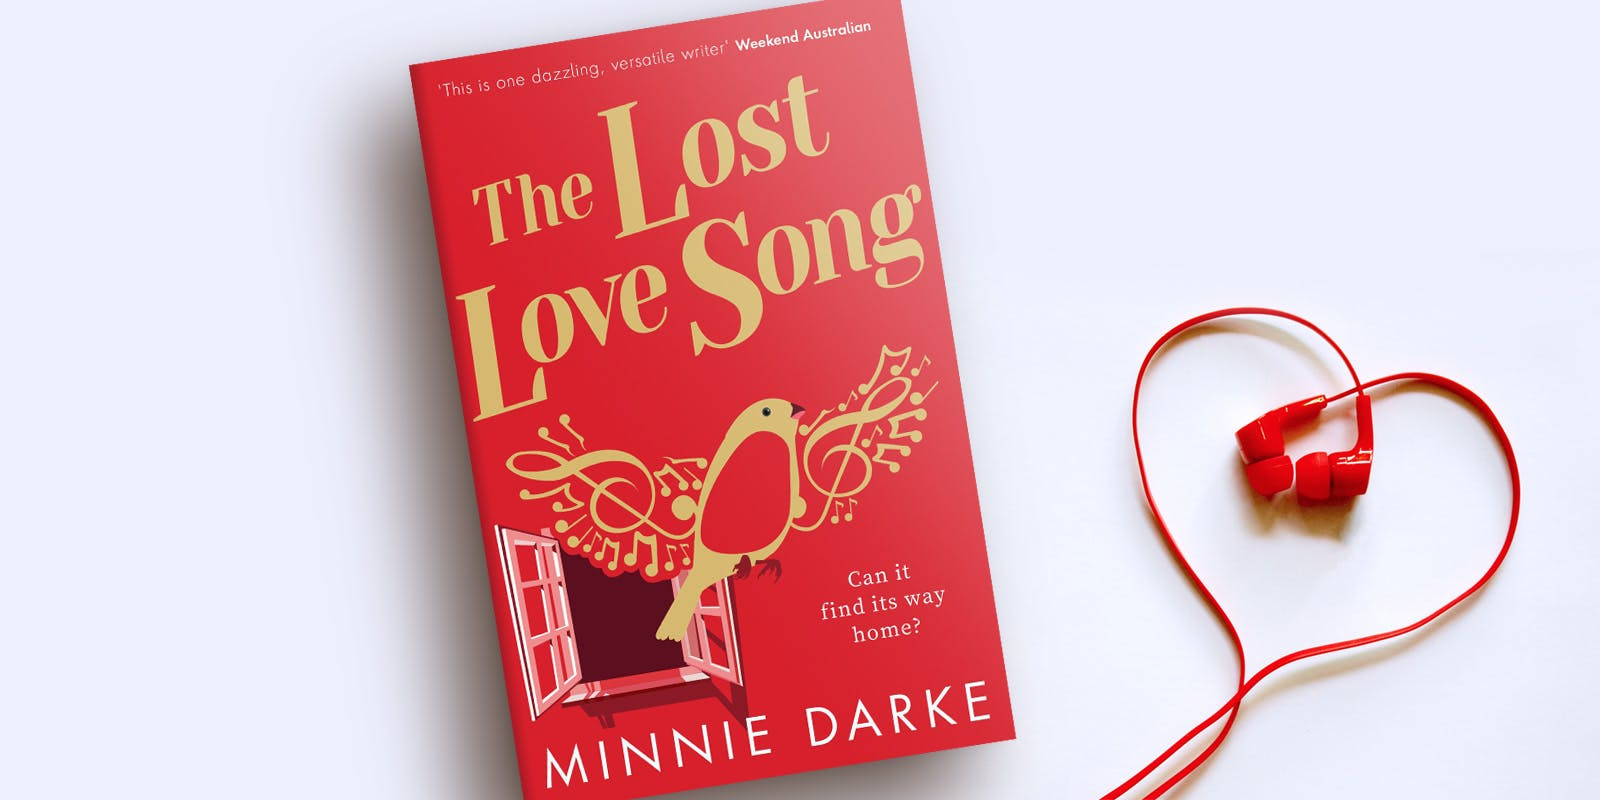 The music behind The Lost Love Song